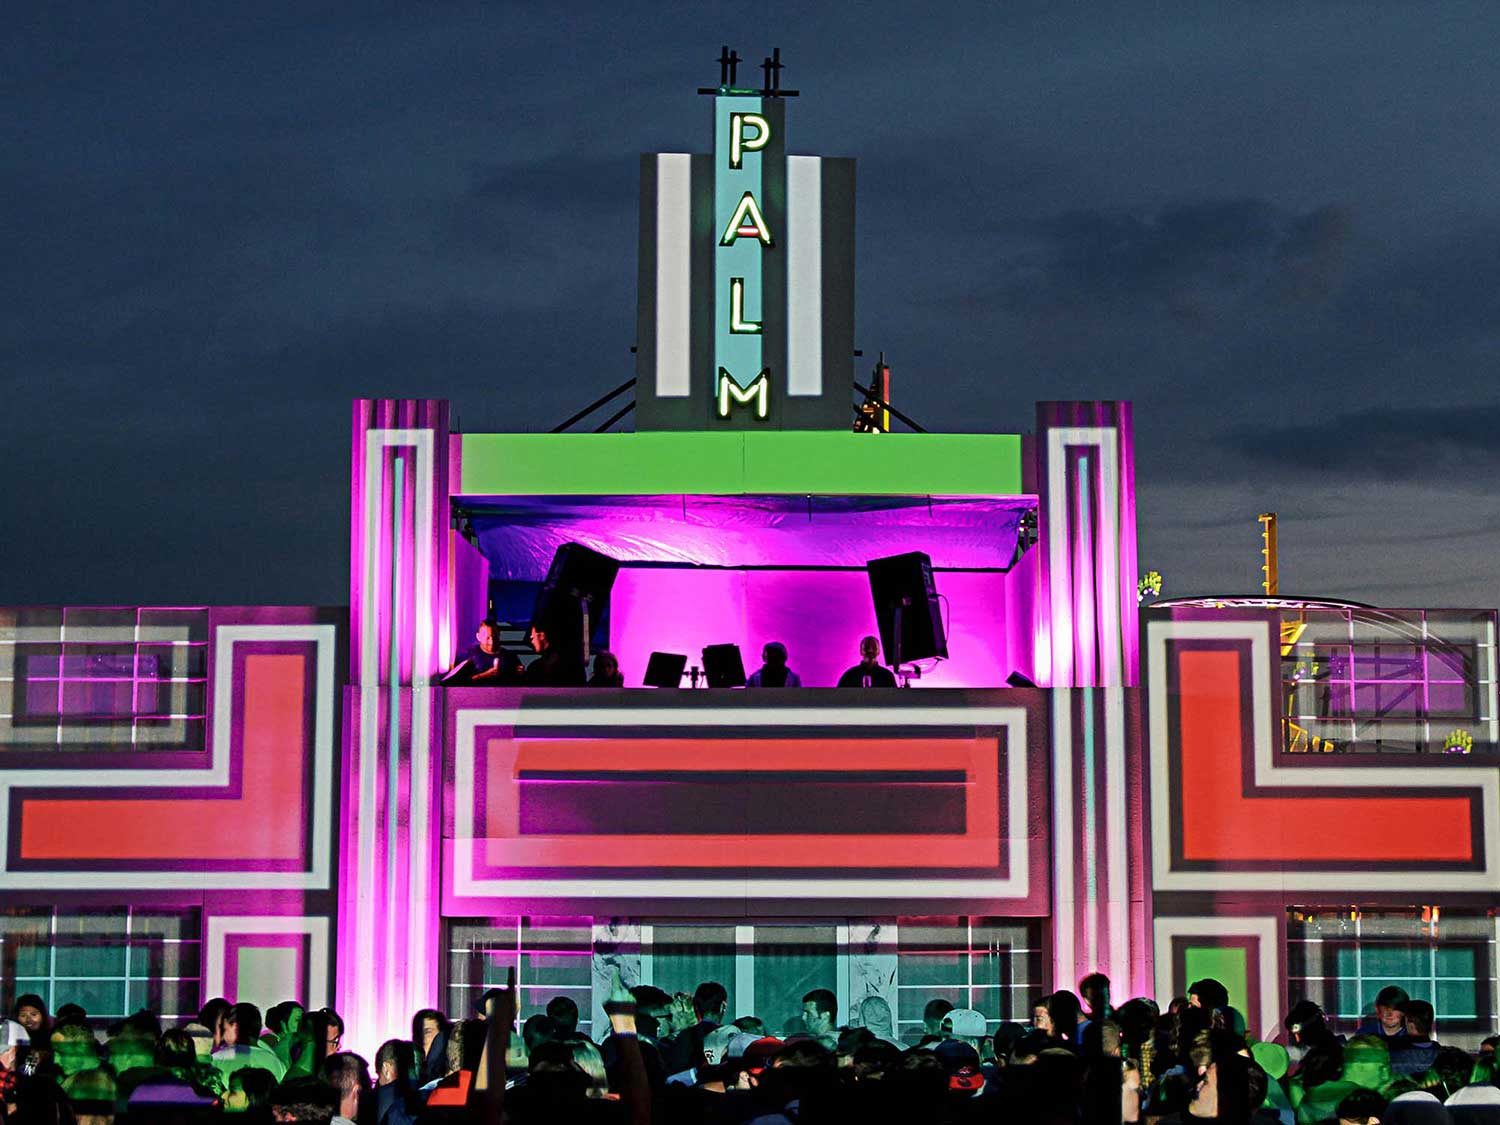 T in the Park Stage VJing set projections